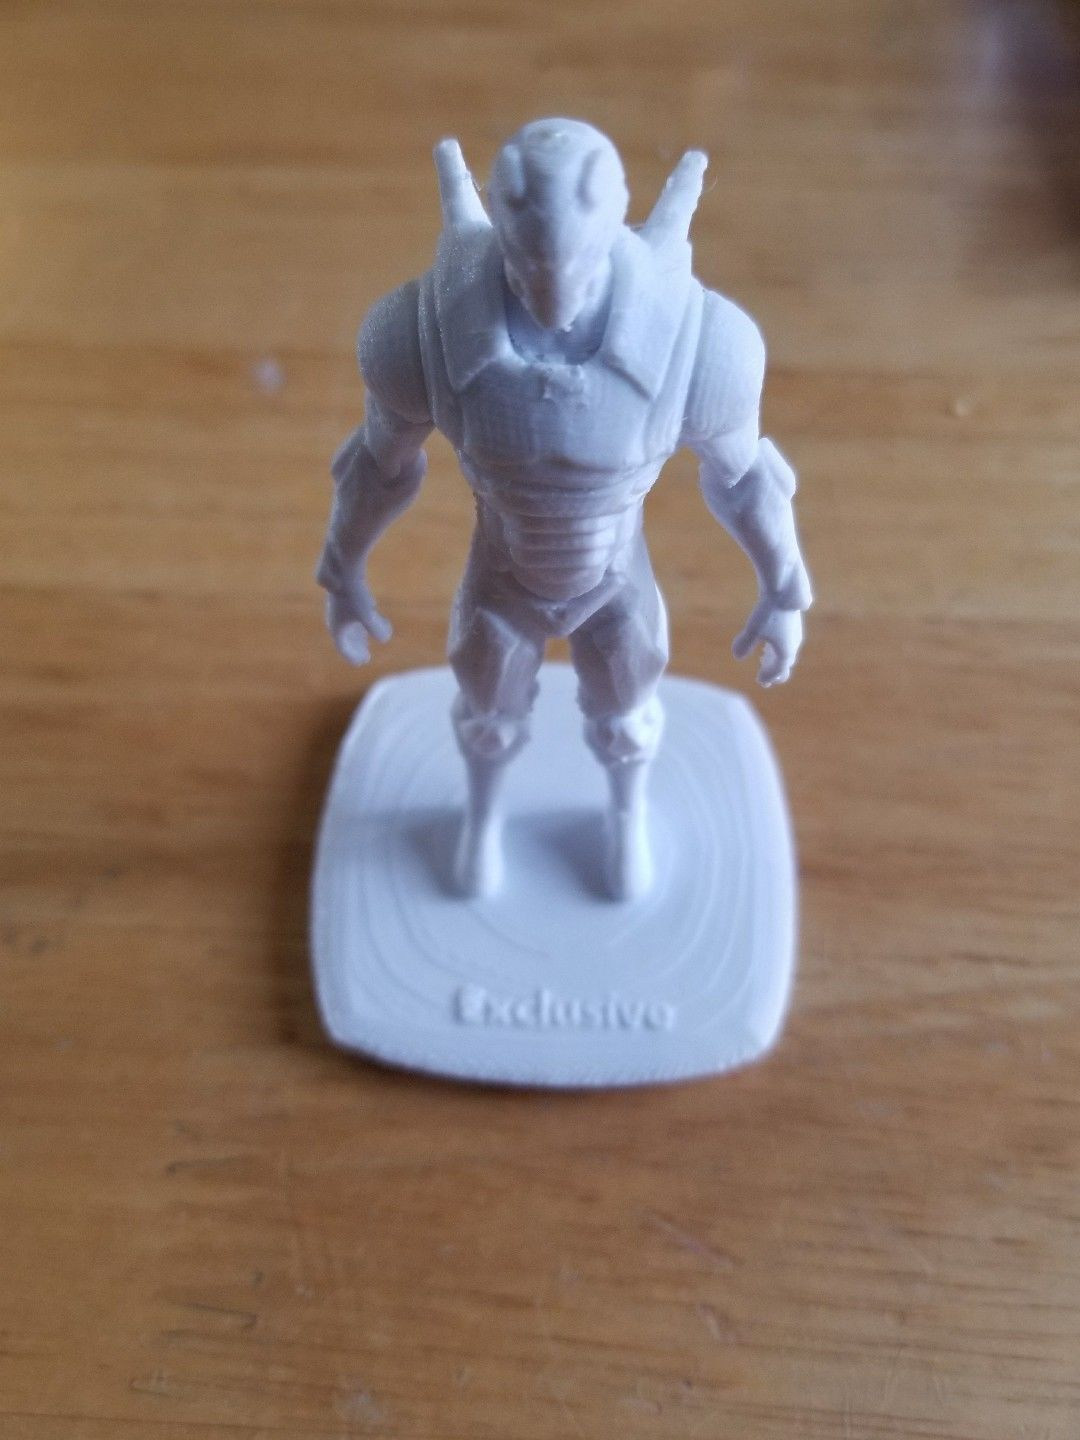 Fortnite Technique Figurine Collector White Custom DIY Model Rare Skin Item 33